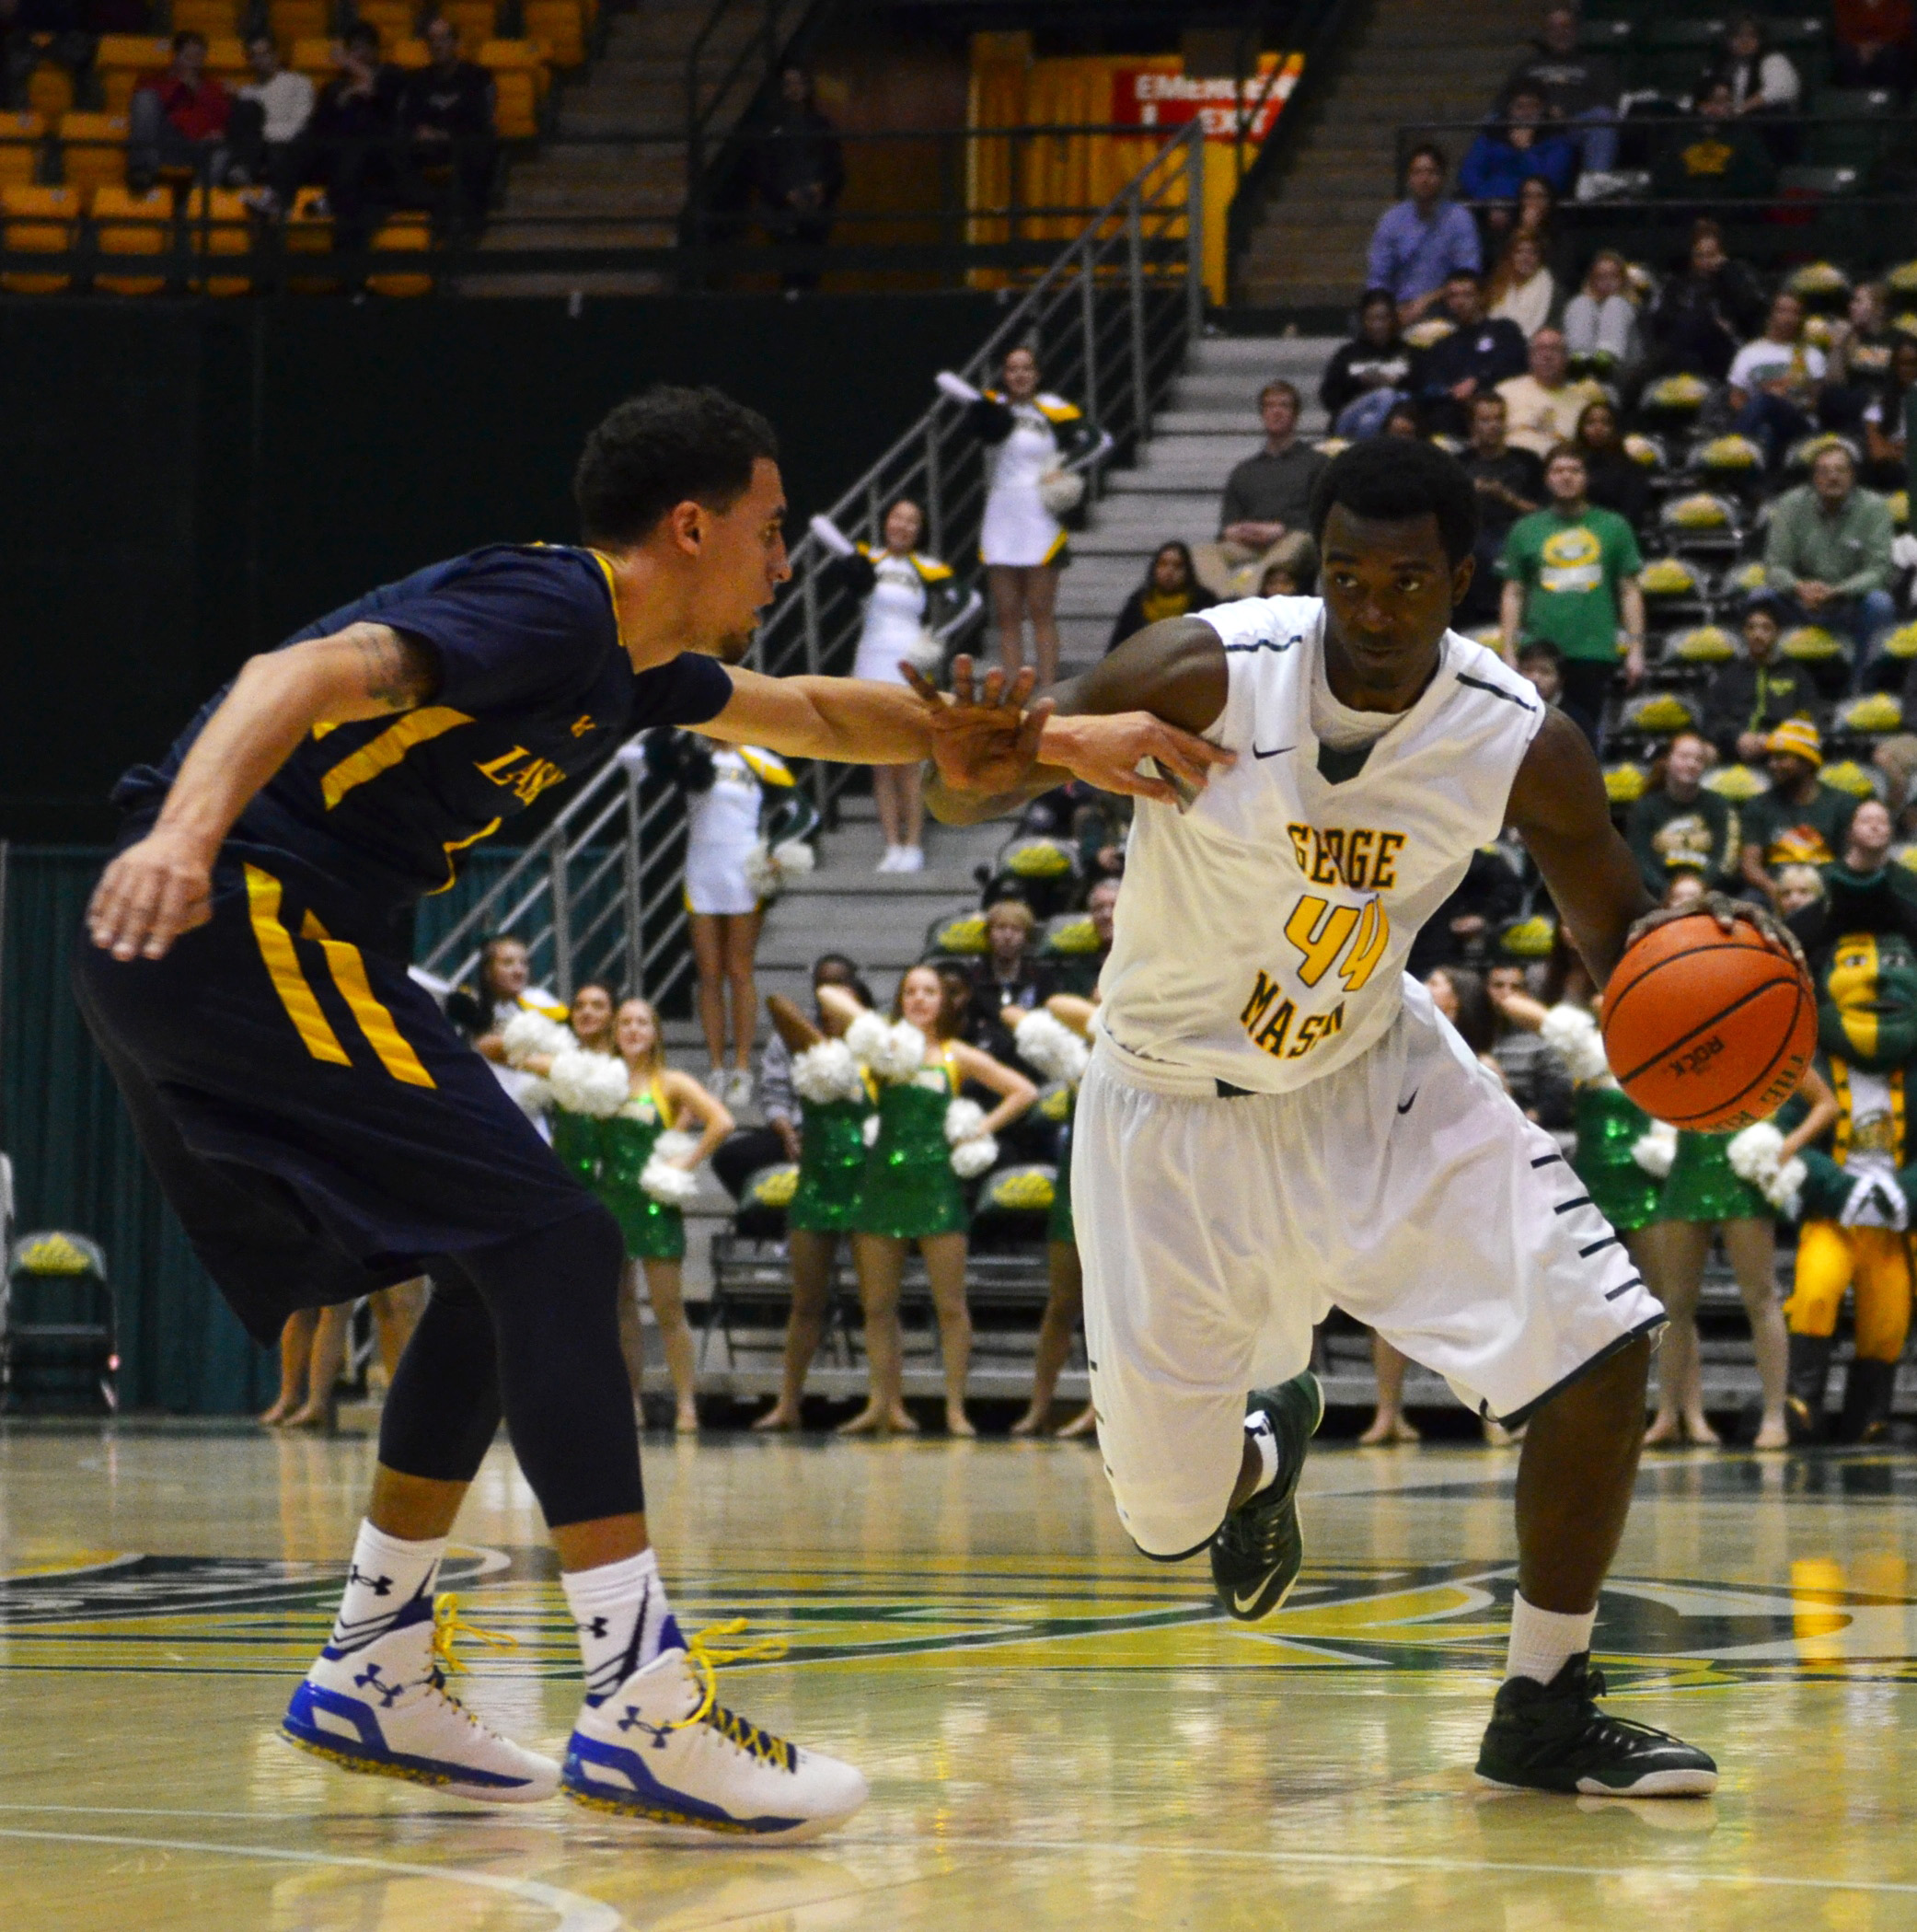 George Mason Opens Conference Play With Win Over La Salle